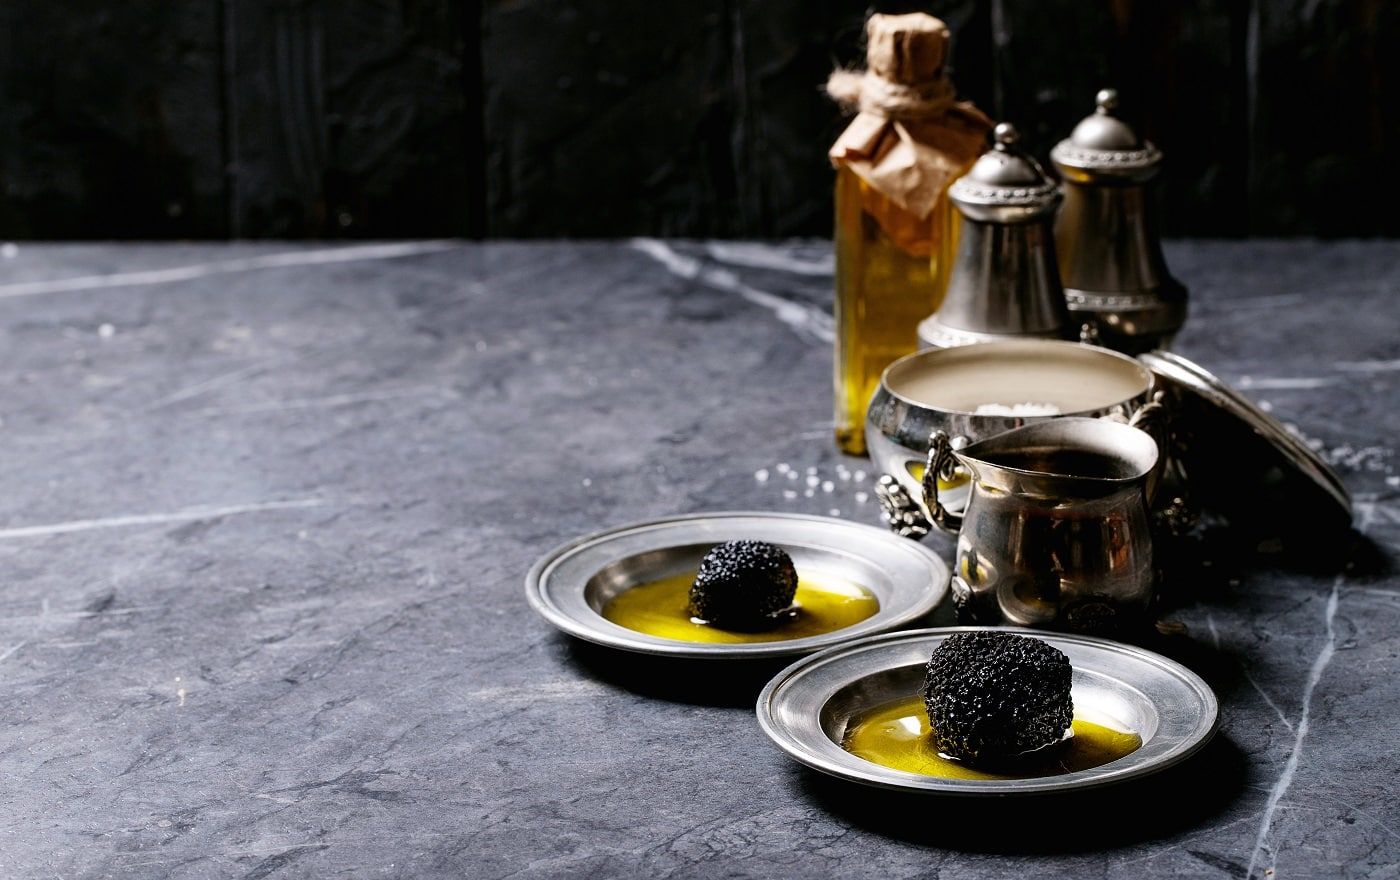 Truffle mushroom served with truffle infused olive oil and sea salt with truffles over a black texture background